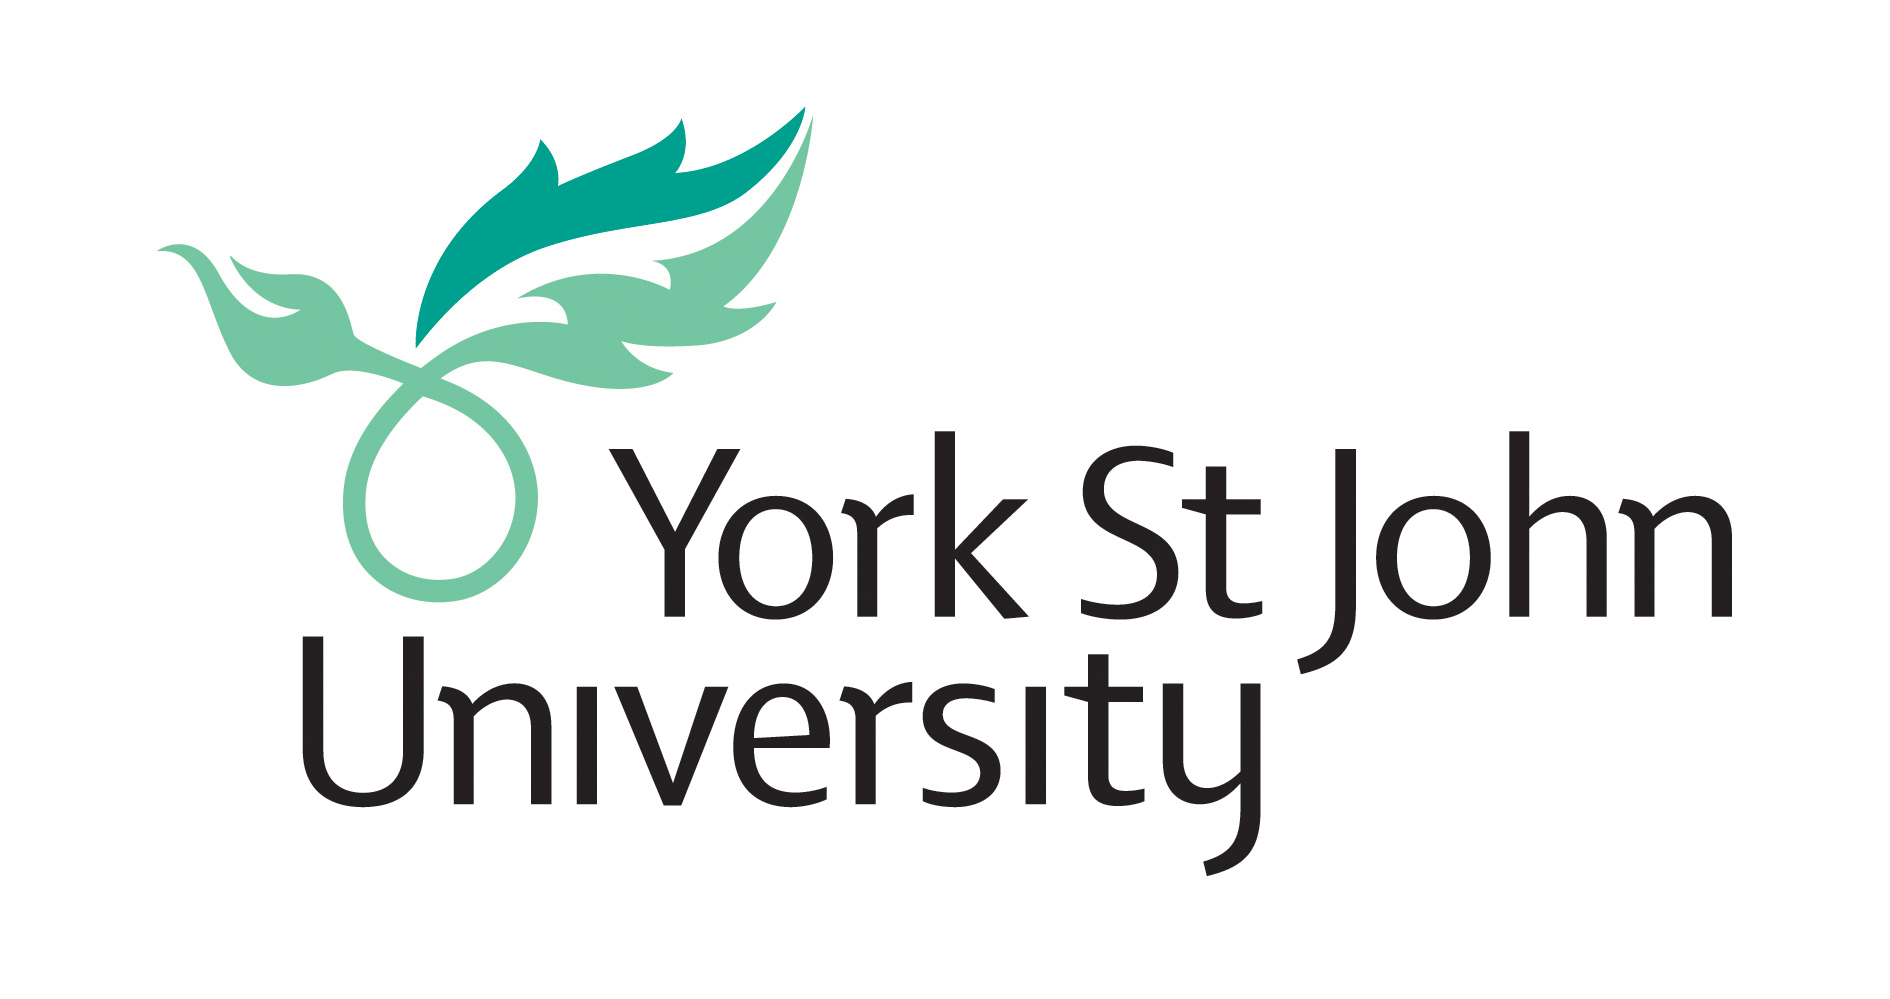 creative writing york st john Top jobs for creative writing majors send email mail share on twitter tweet share on pinterest share share on facebook share getting to the bottom of a story as.